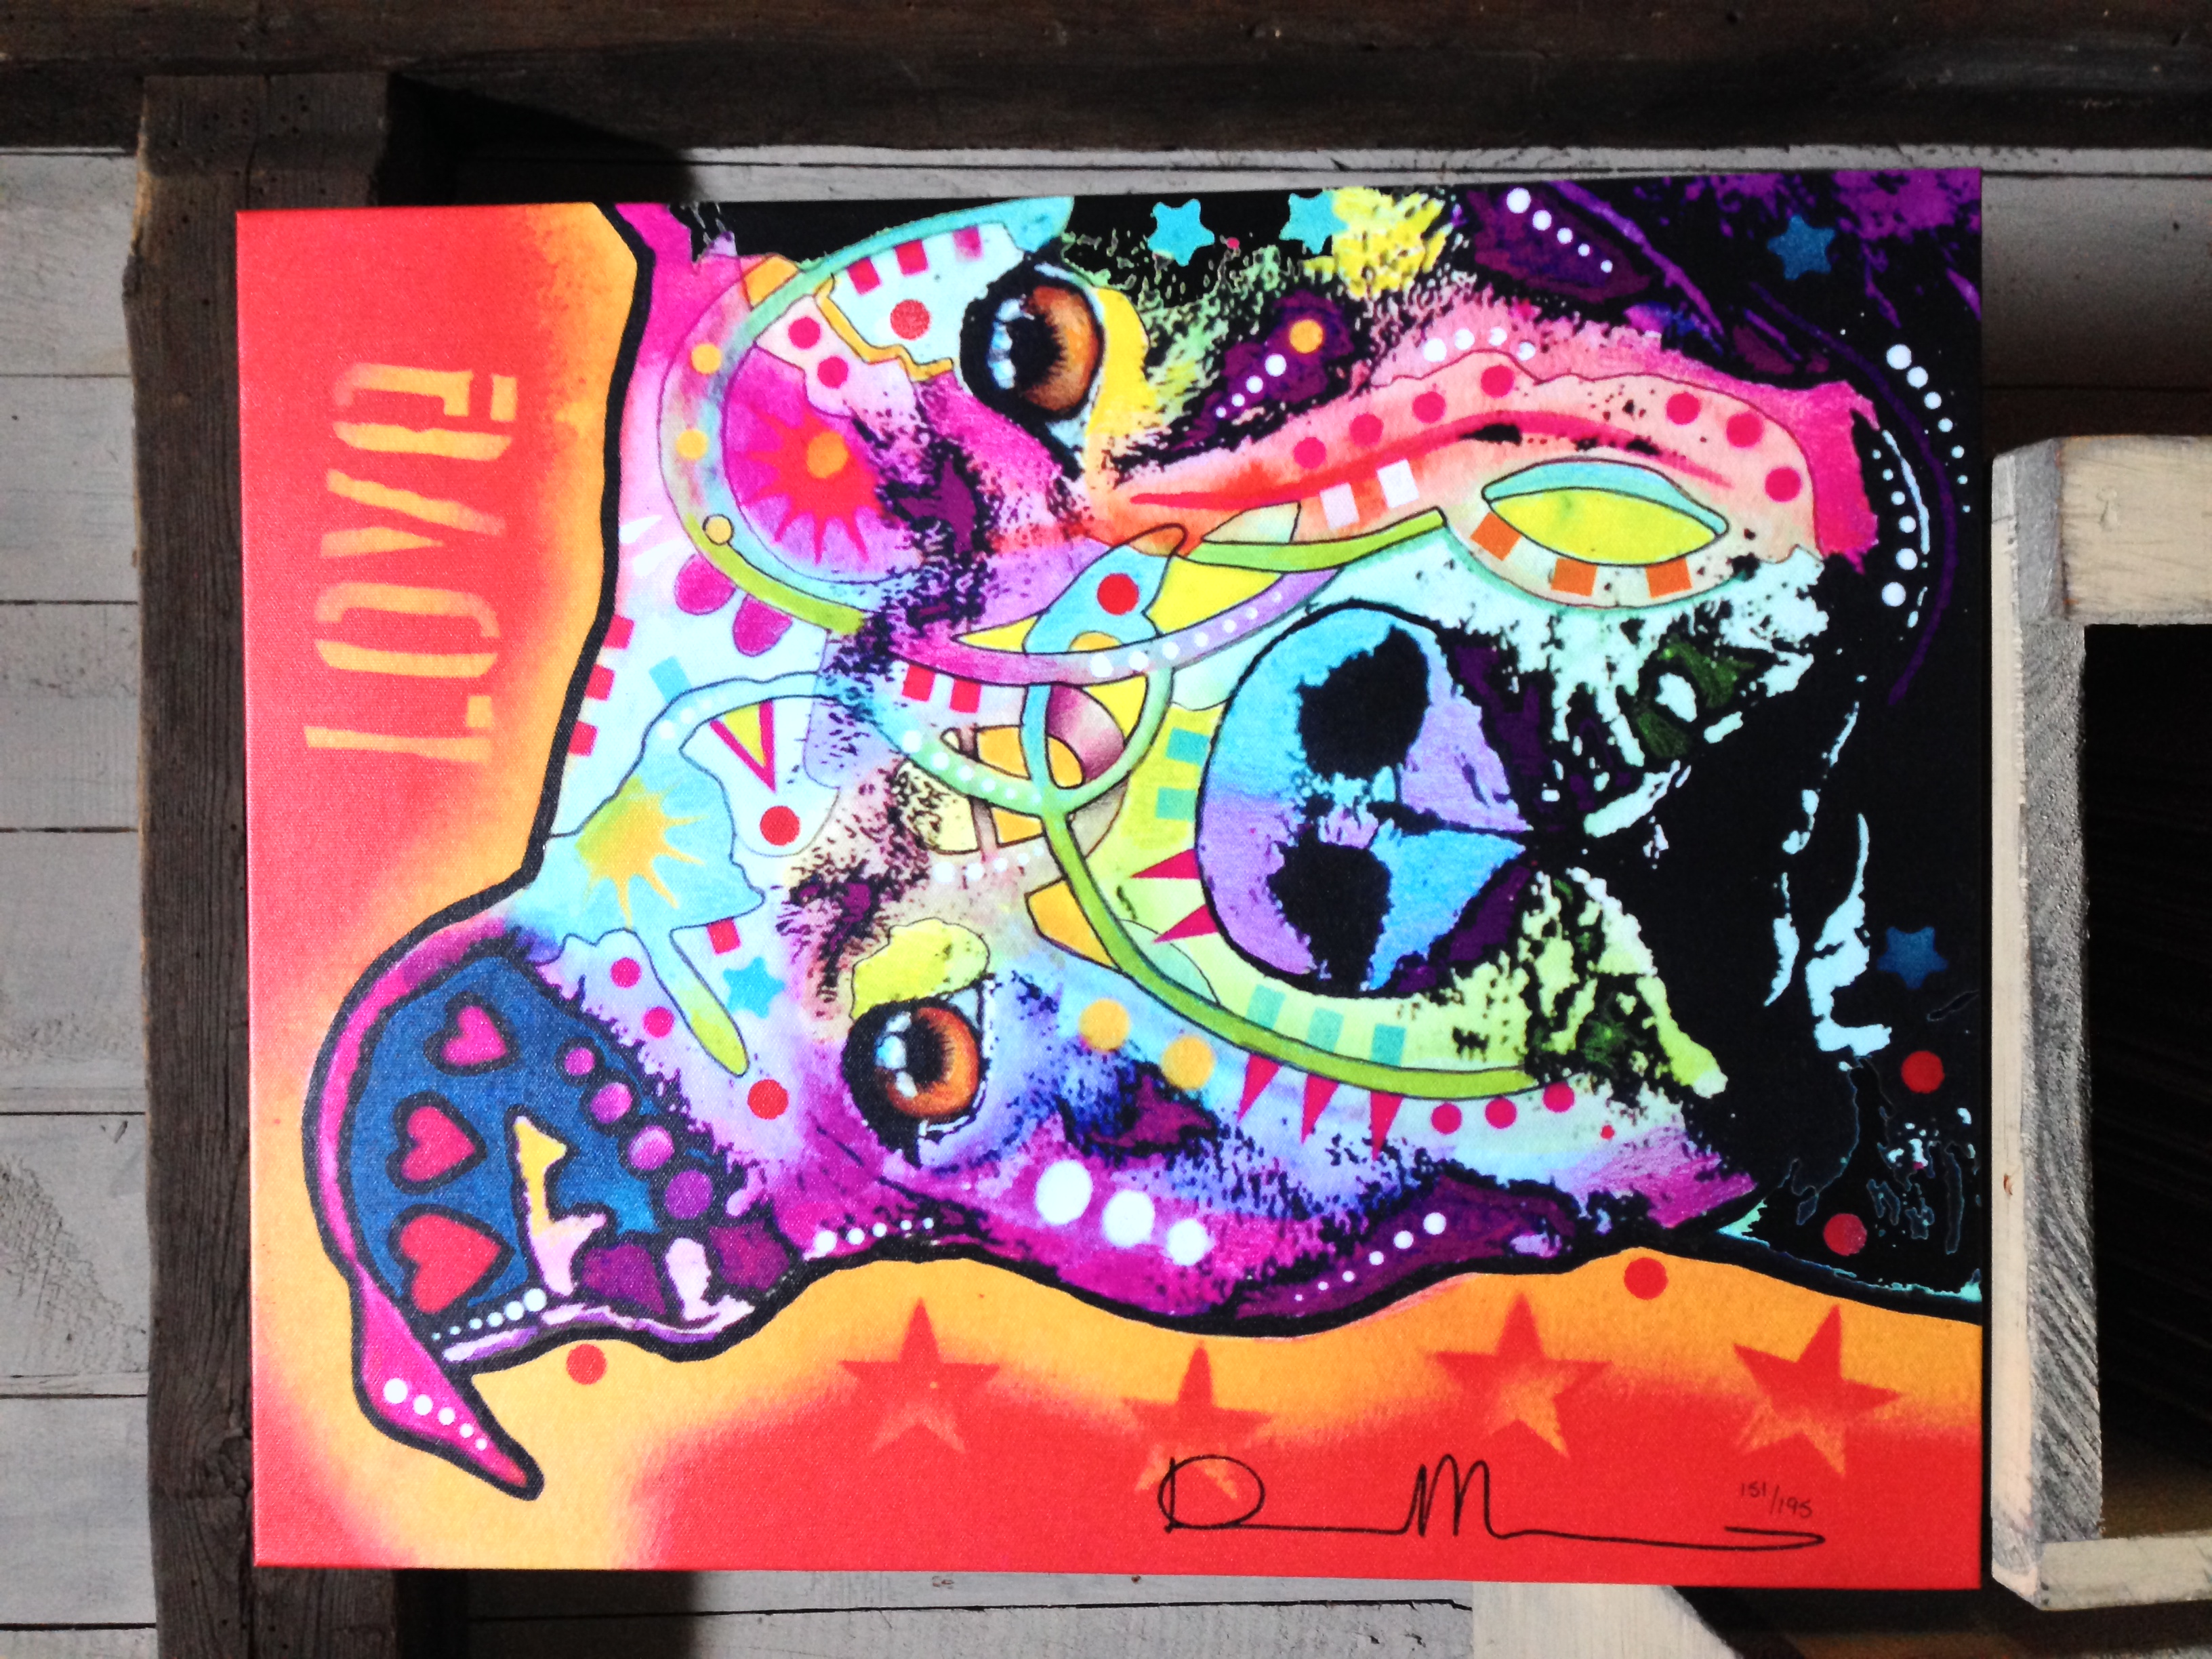 GRAND PRIZE for BEST in SHOW (most votes) - 16 x 20 Dean Russo Canvas